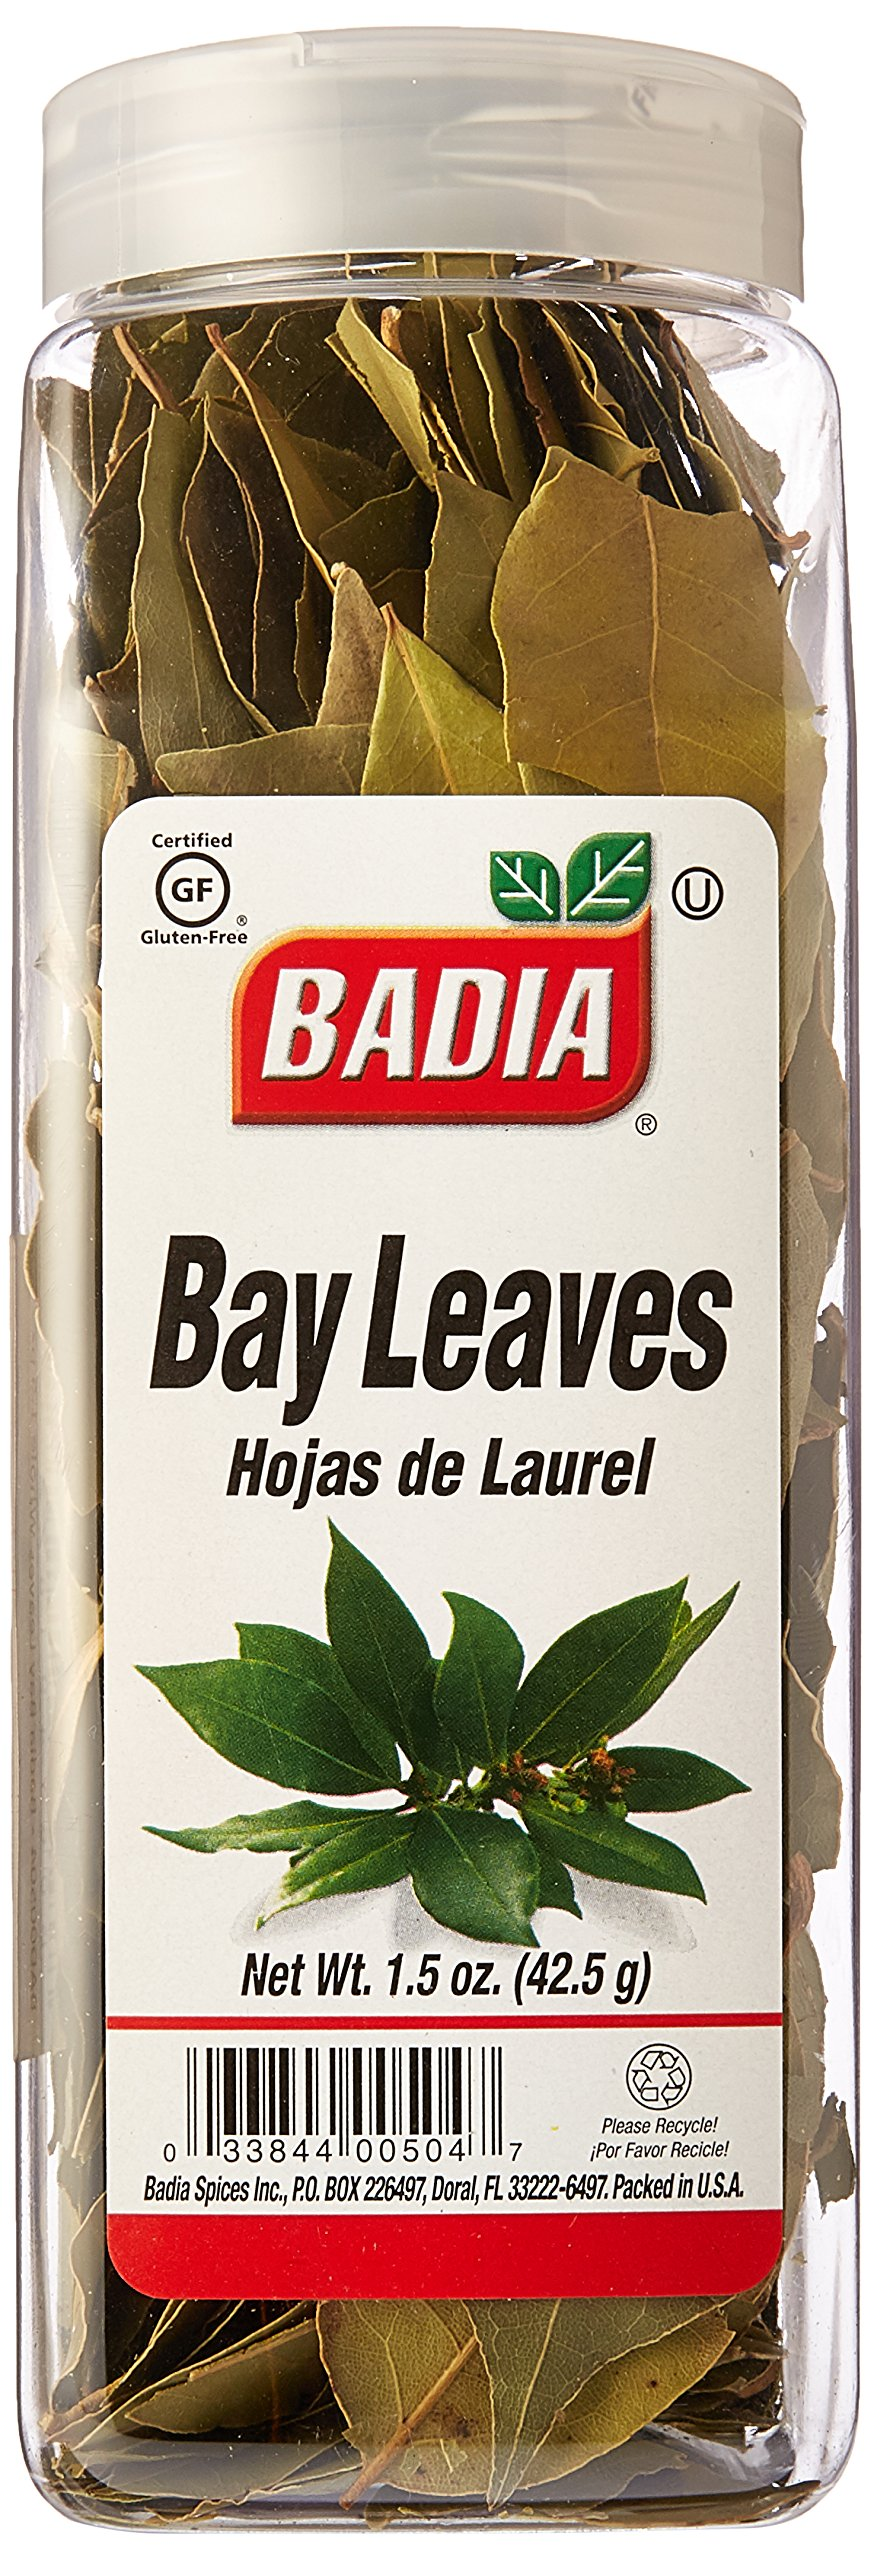 Badia Bay Leaves Whole 1.5 oz